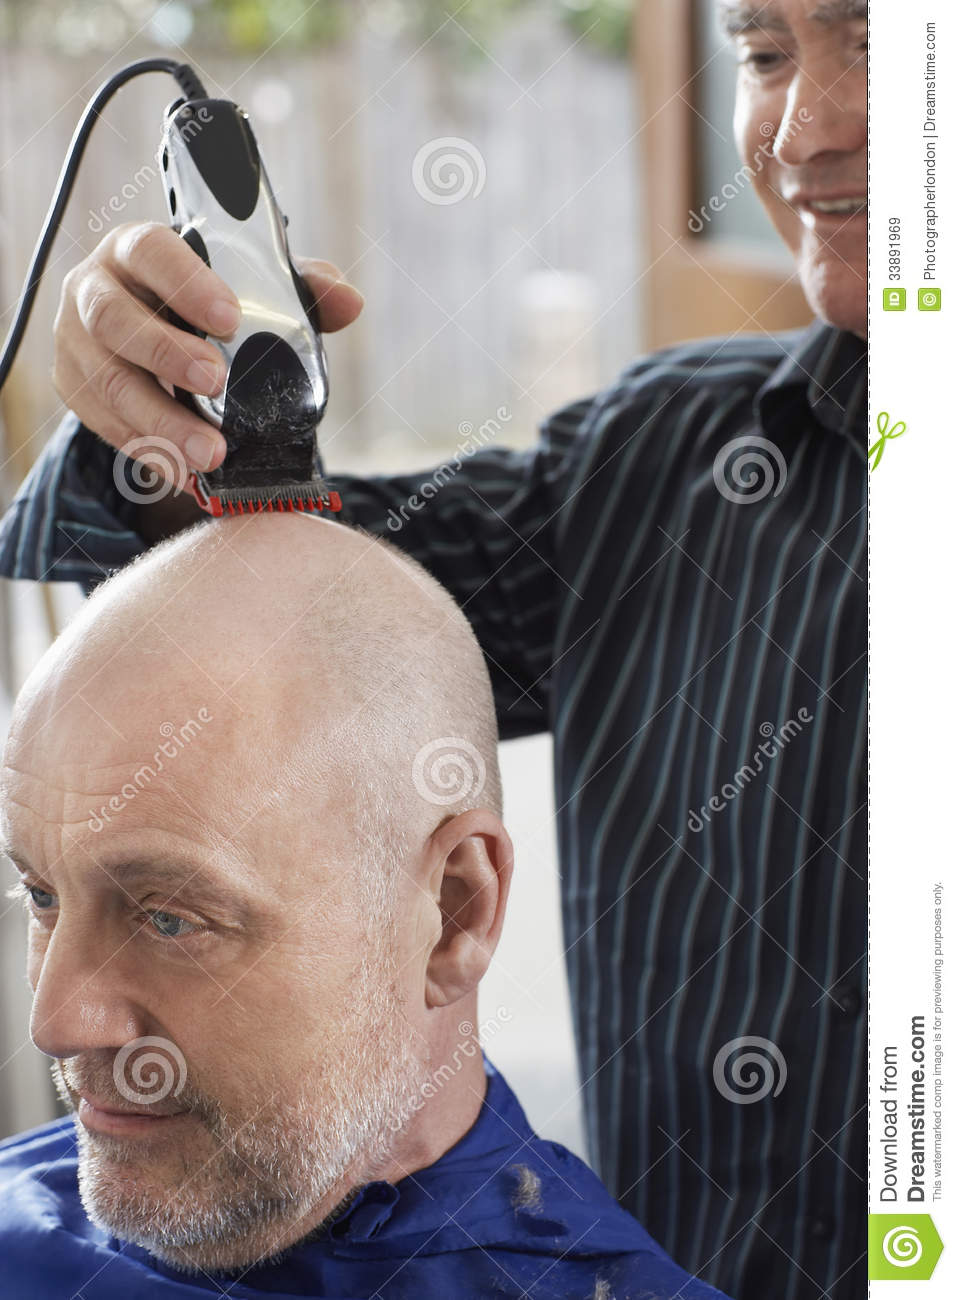 Barber Shaving Senior Mans Head Stock Image  Image 33891969